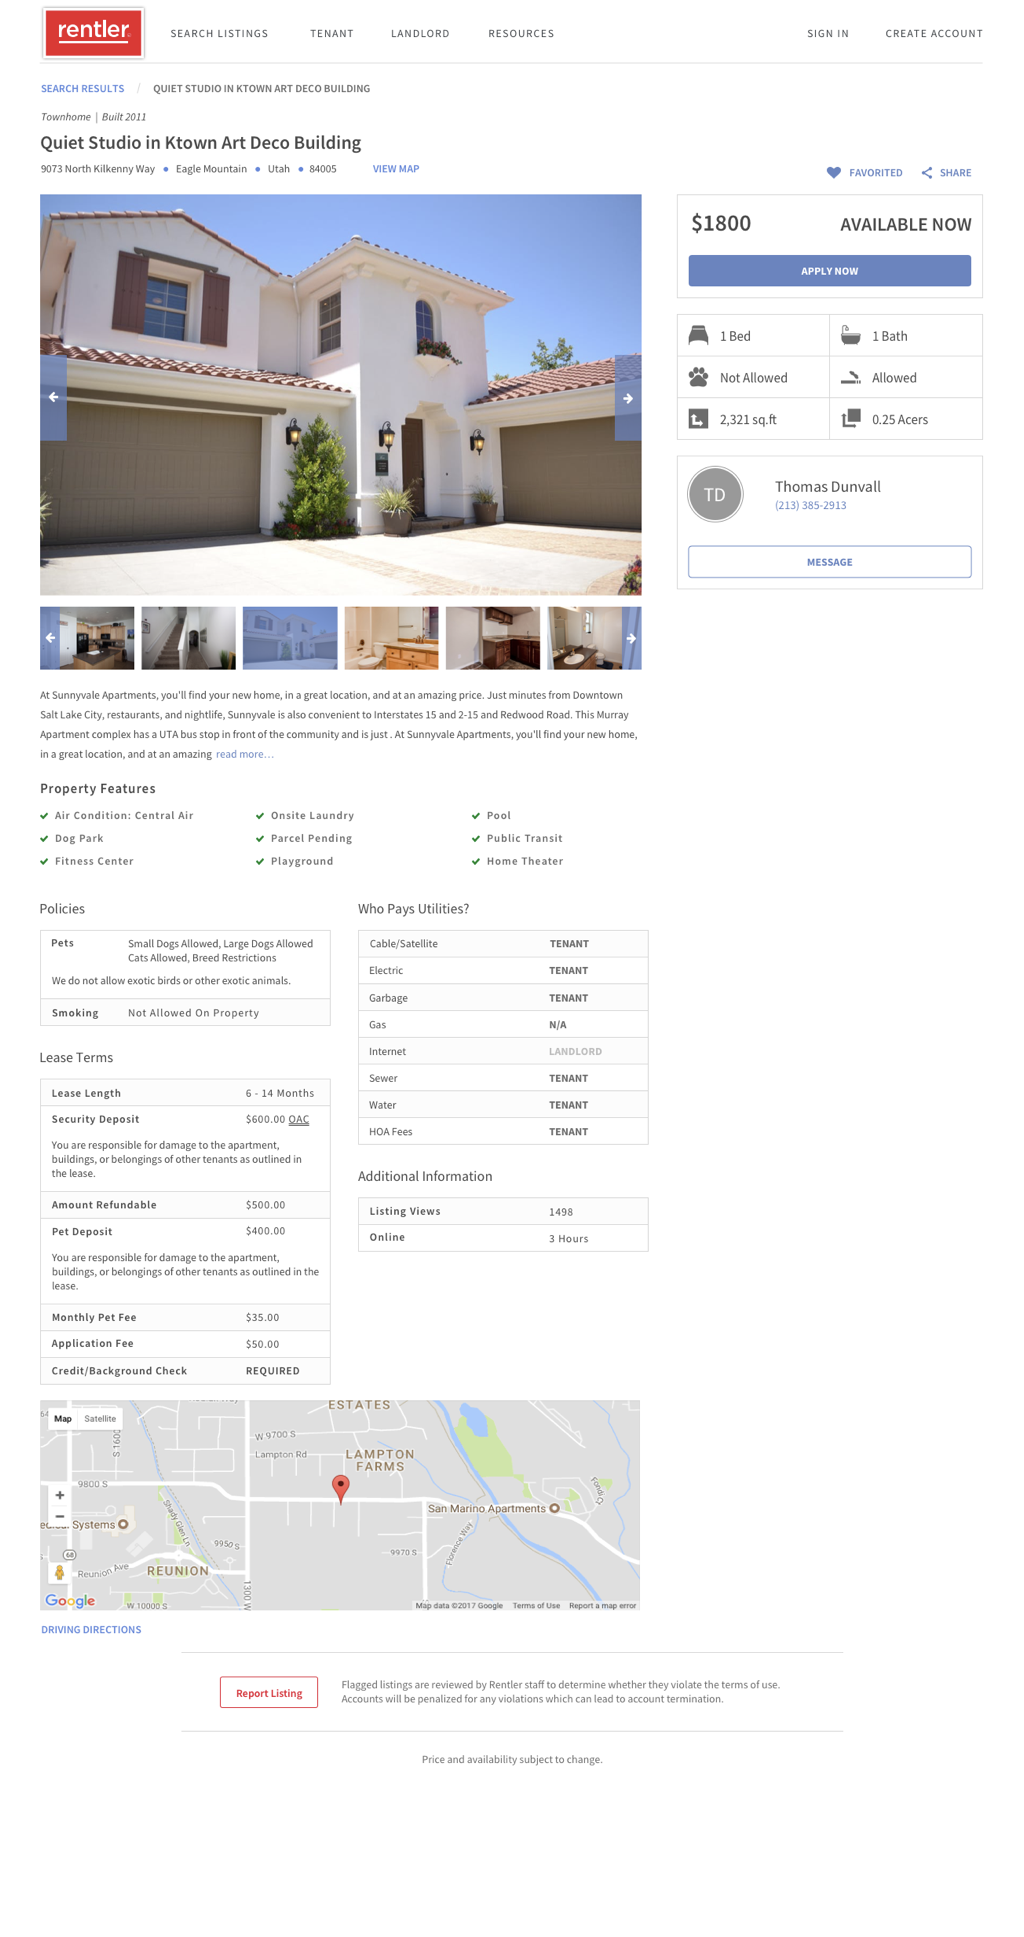 Rentler.com Demo - Property Listings Page on Rentler